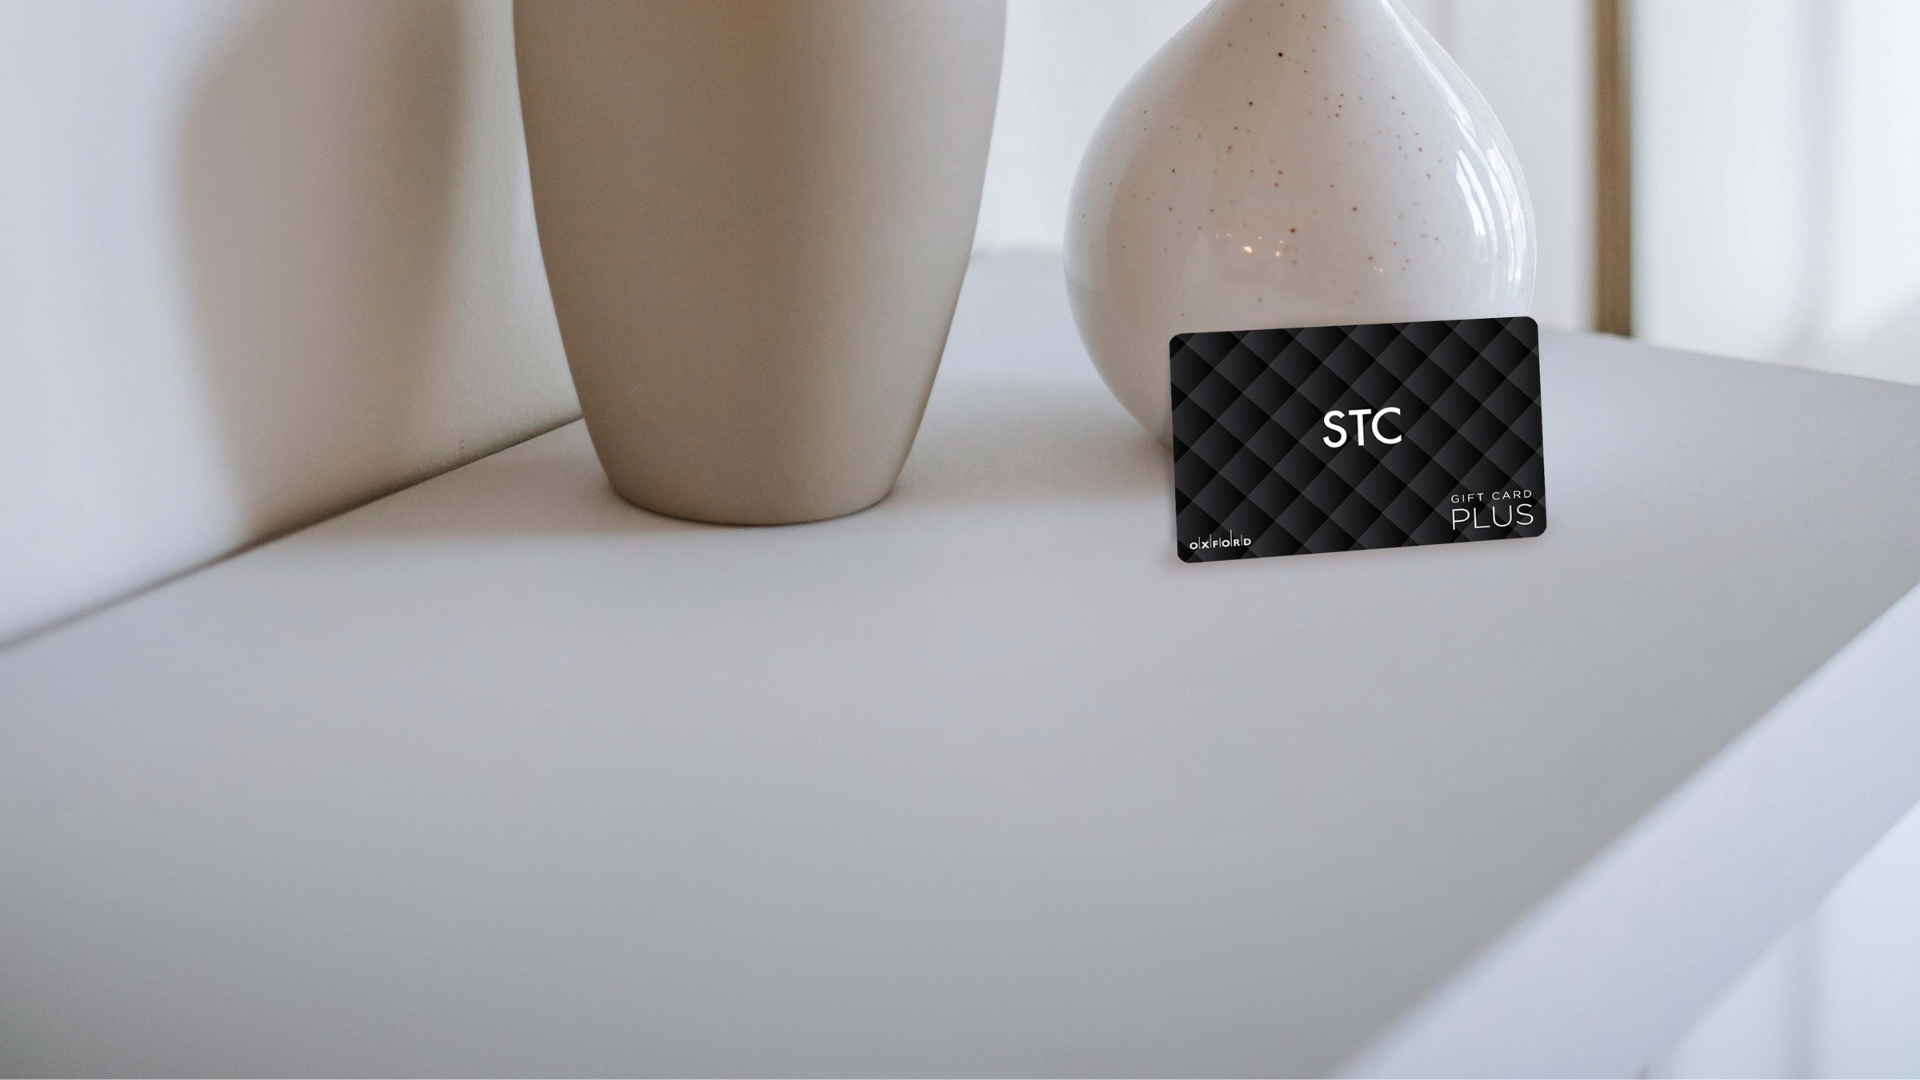 STC Gift Card Image, Black STC Gift Card, Beige pot